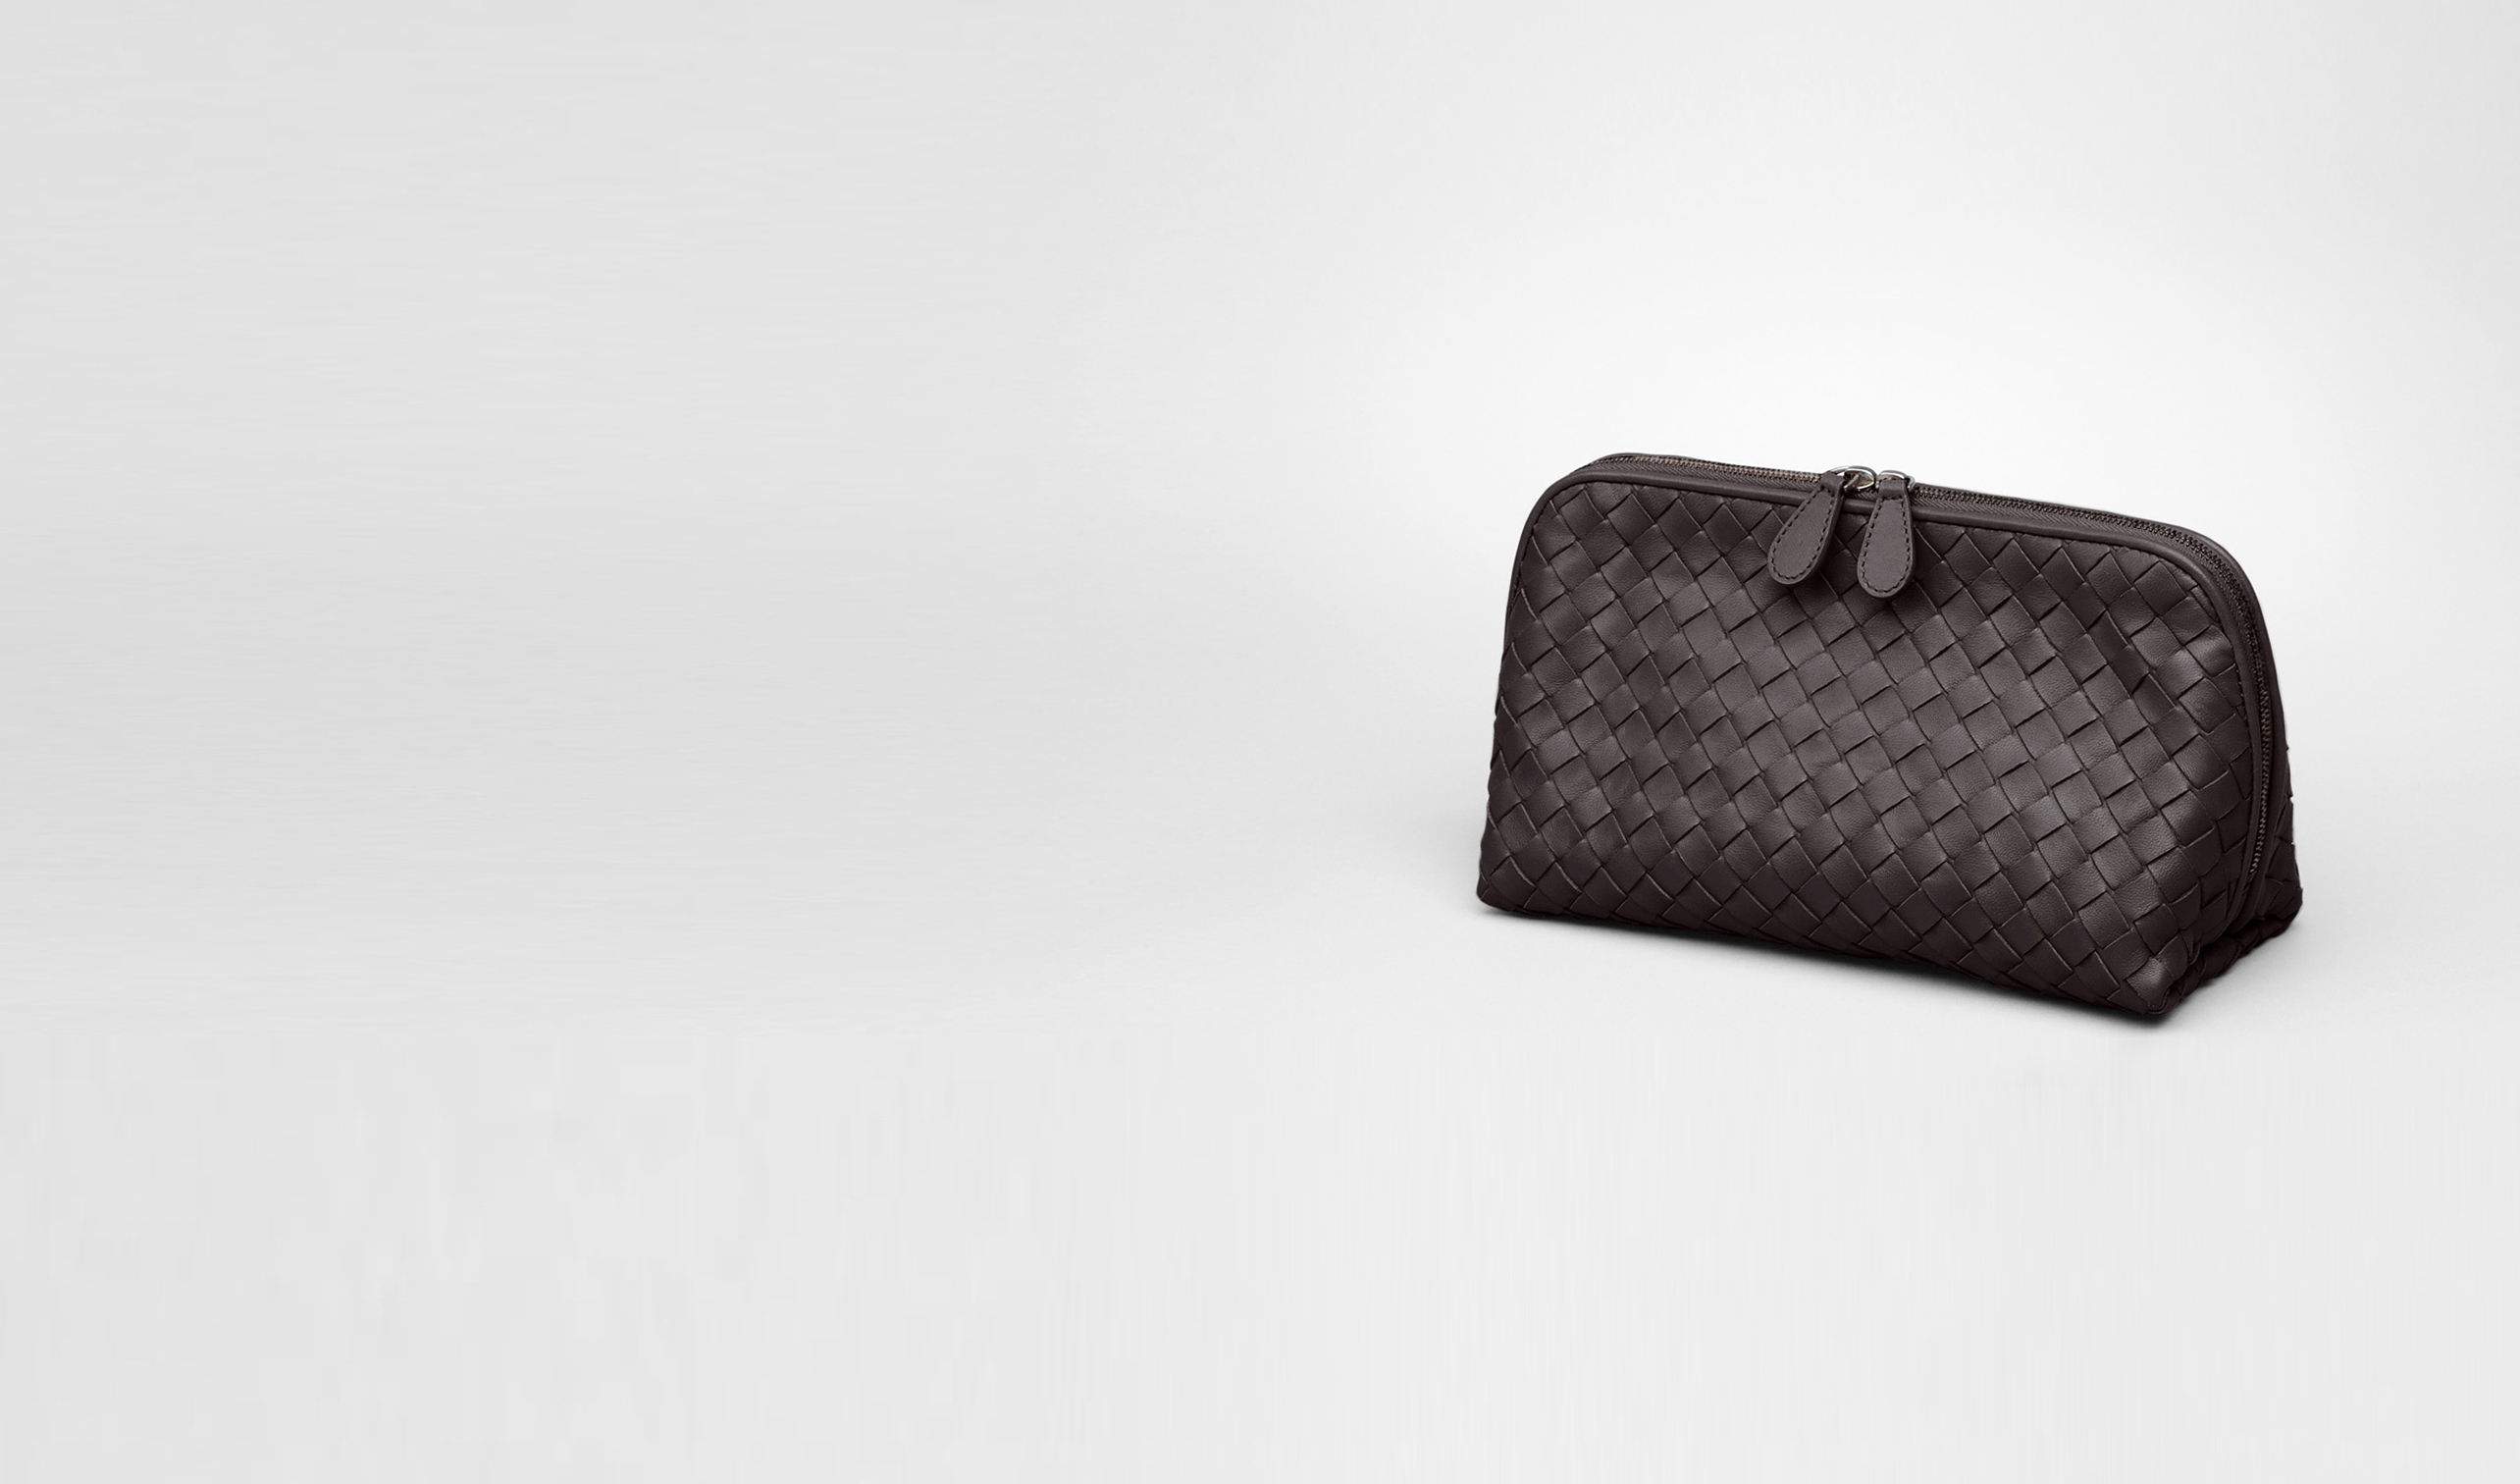 BOTTEGA VENETA Altro accessorio in pelle D Beauty Case Ebano in Nappa Intrecciata pl